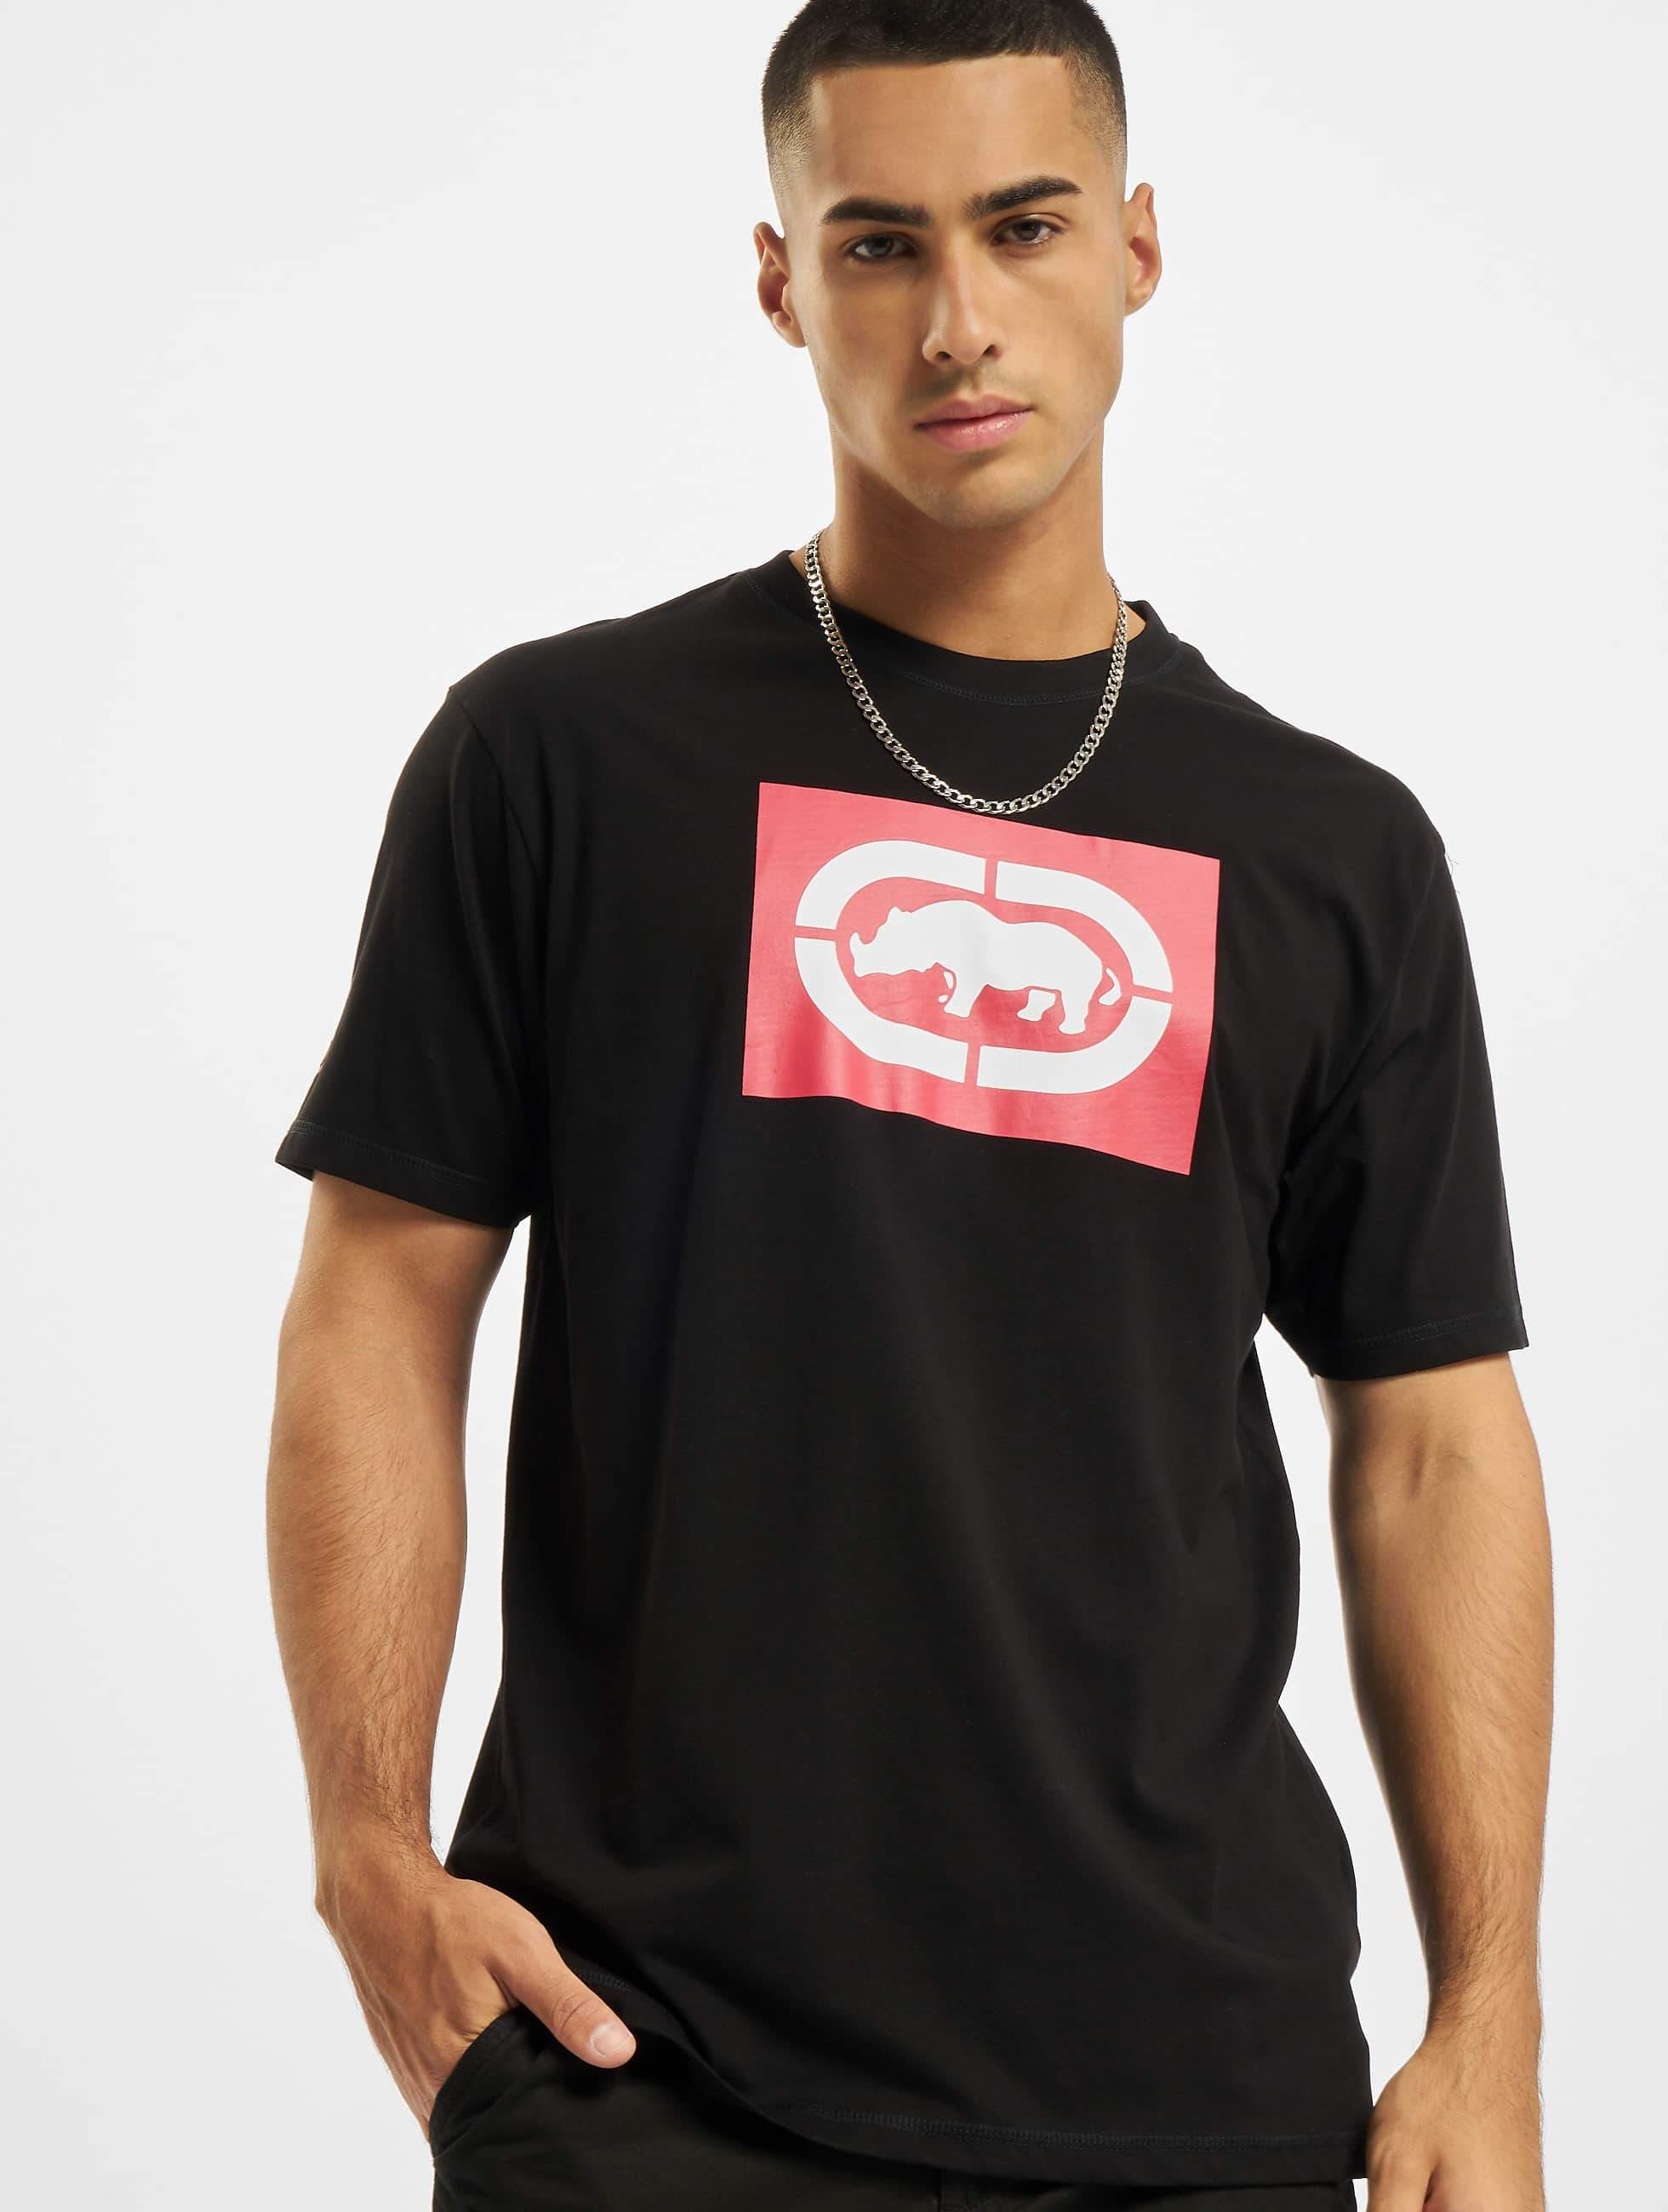 Ecko Unltd. / T-Shirt Base in black S